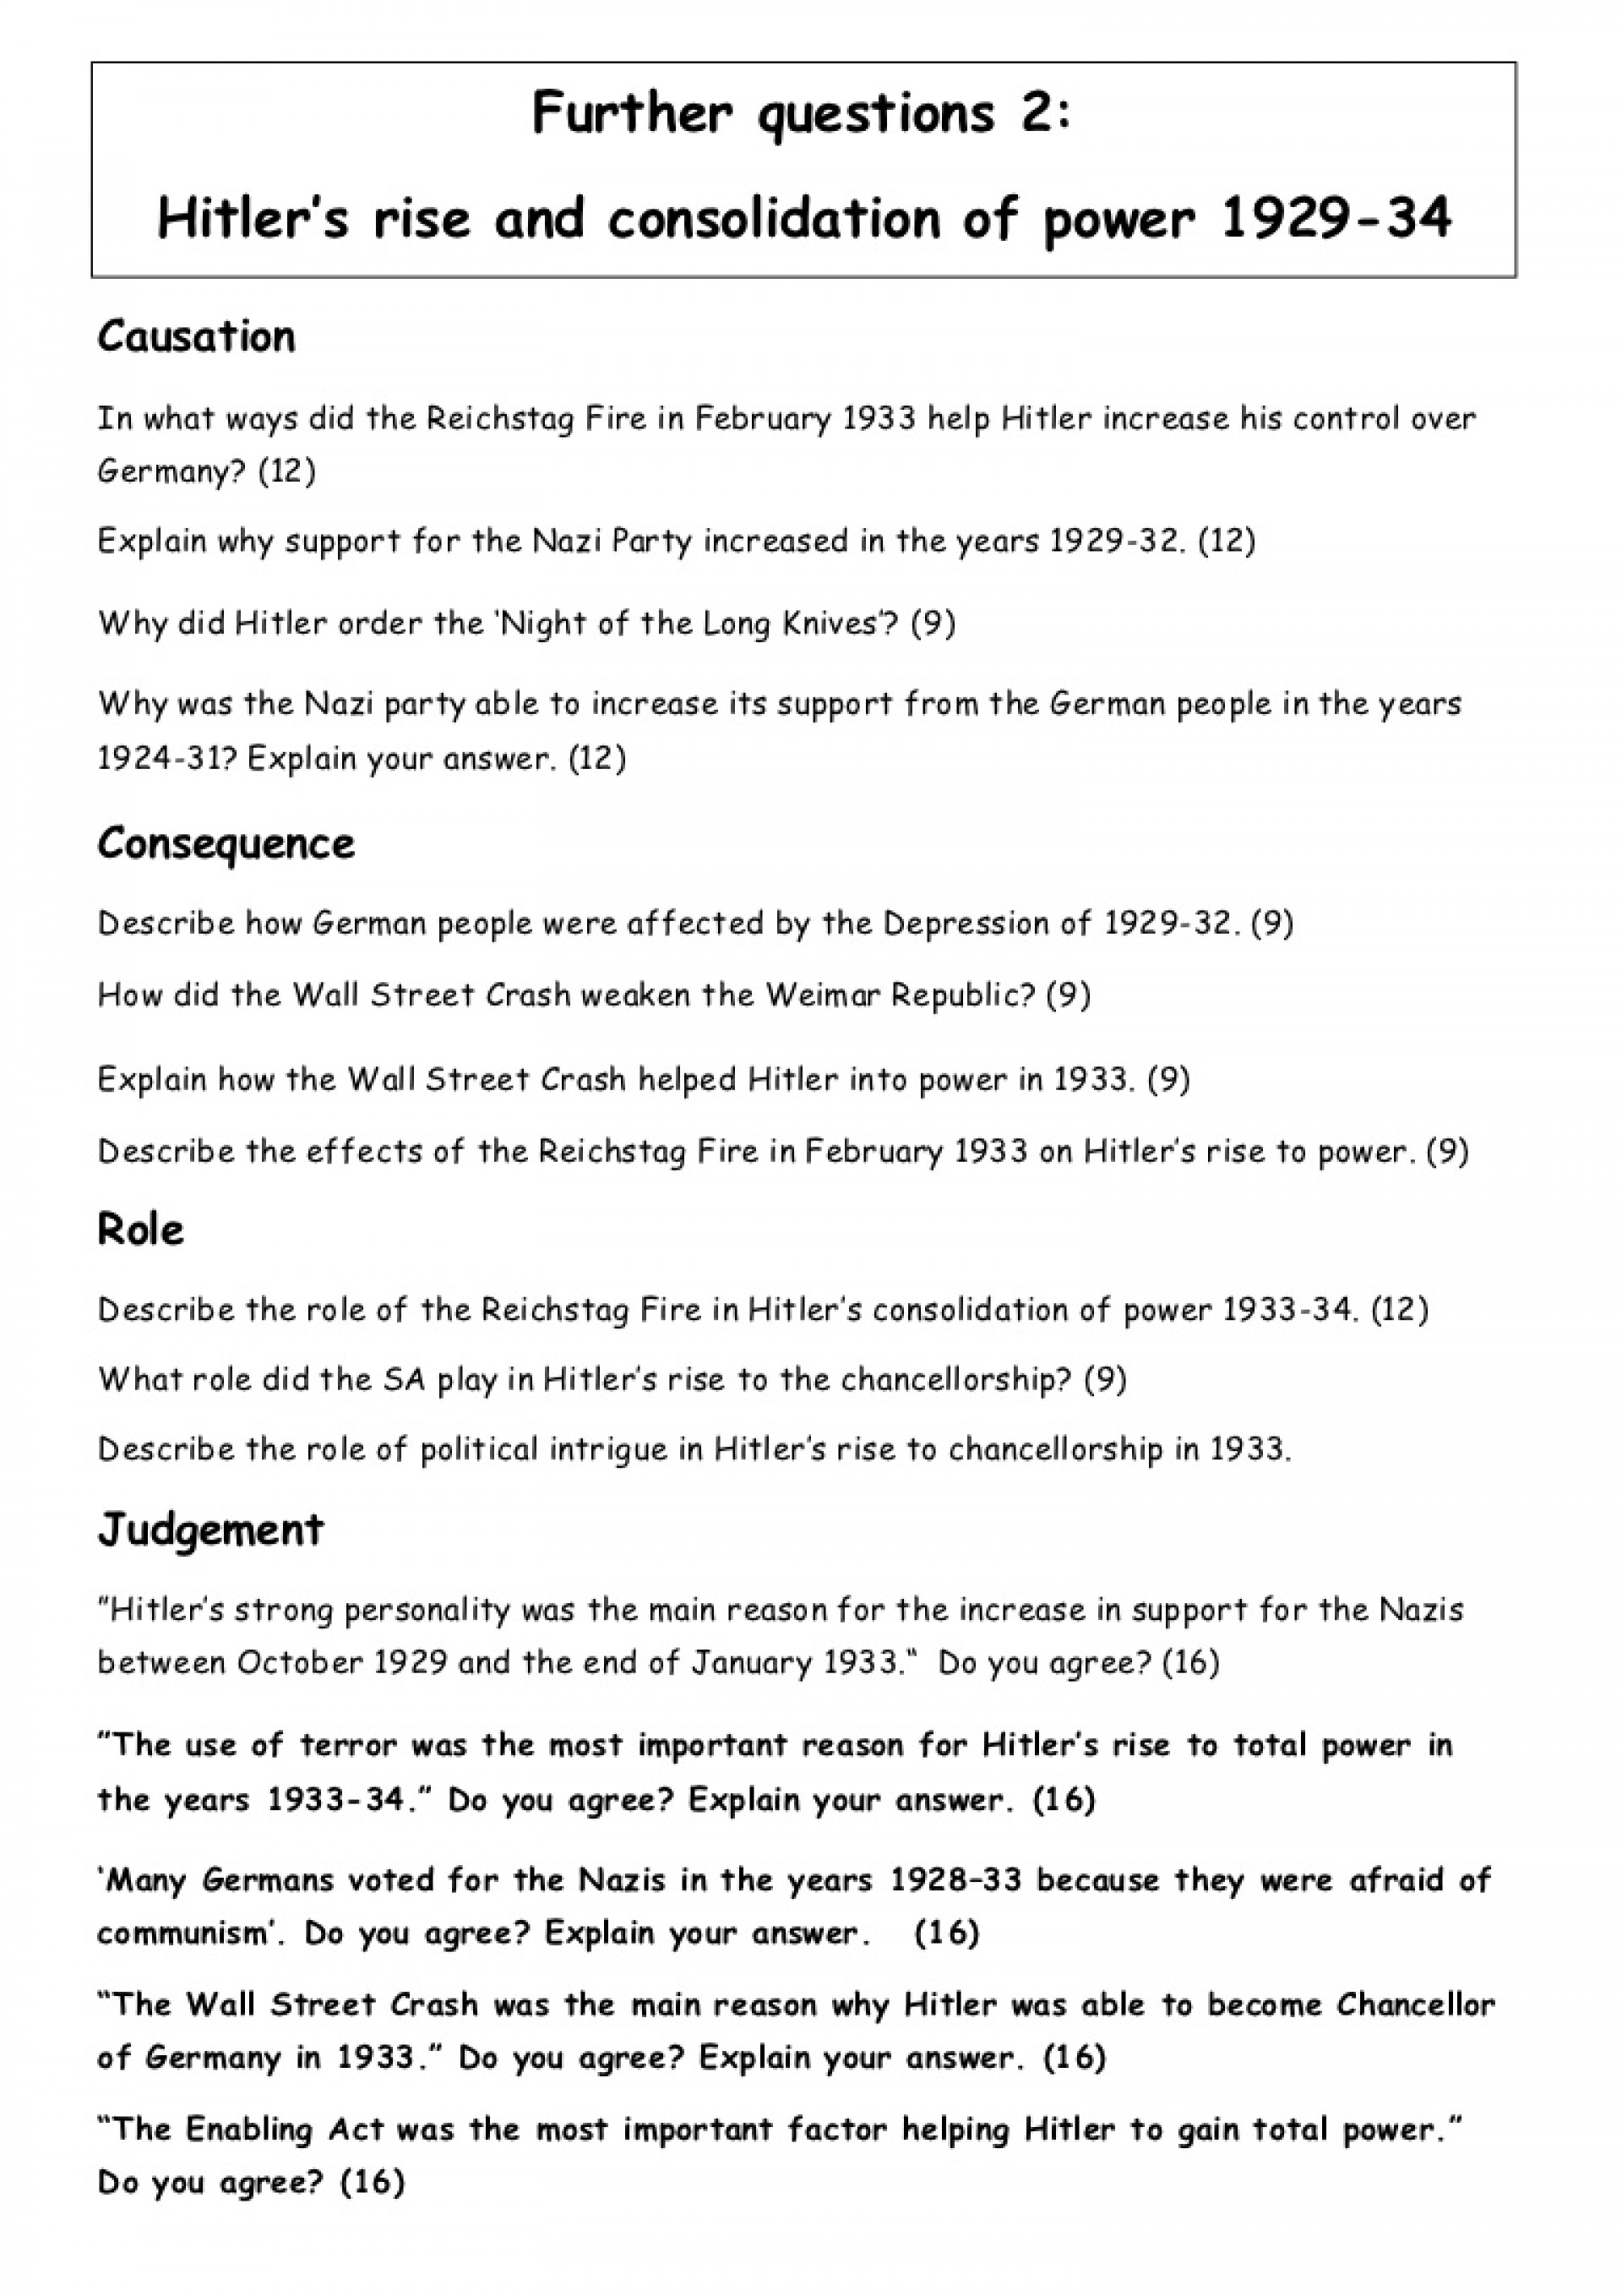 002 Hitlers Rise To Power Essay Furtherquestions2 Hitlersriseandconsolidationofpower Phpapp01 Thumbnail Impressive Hitler's Free Reasons For 1933 1920